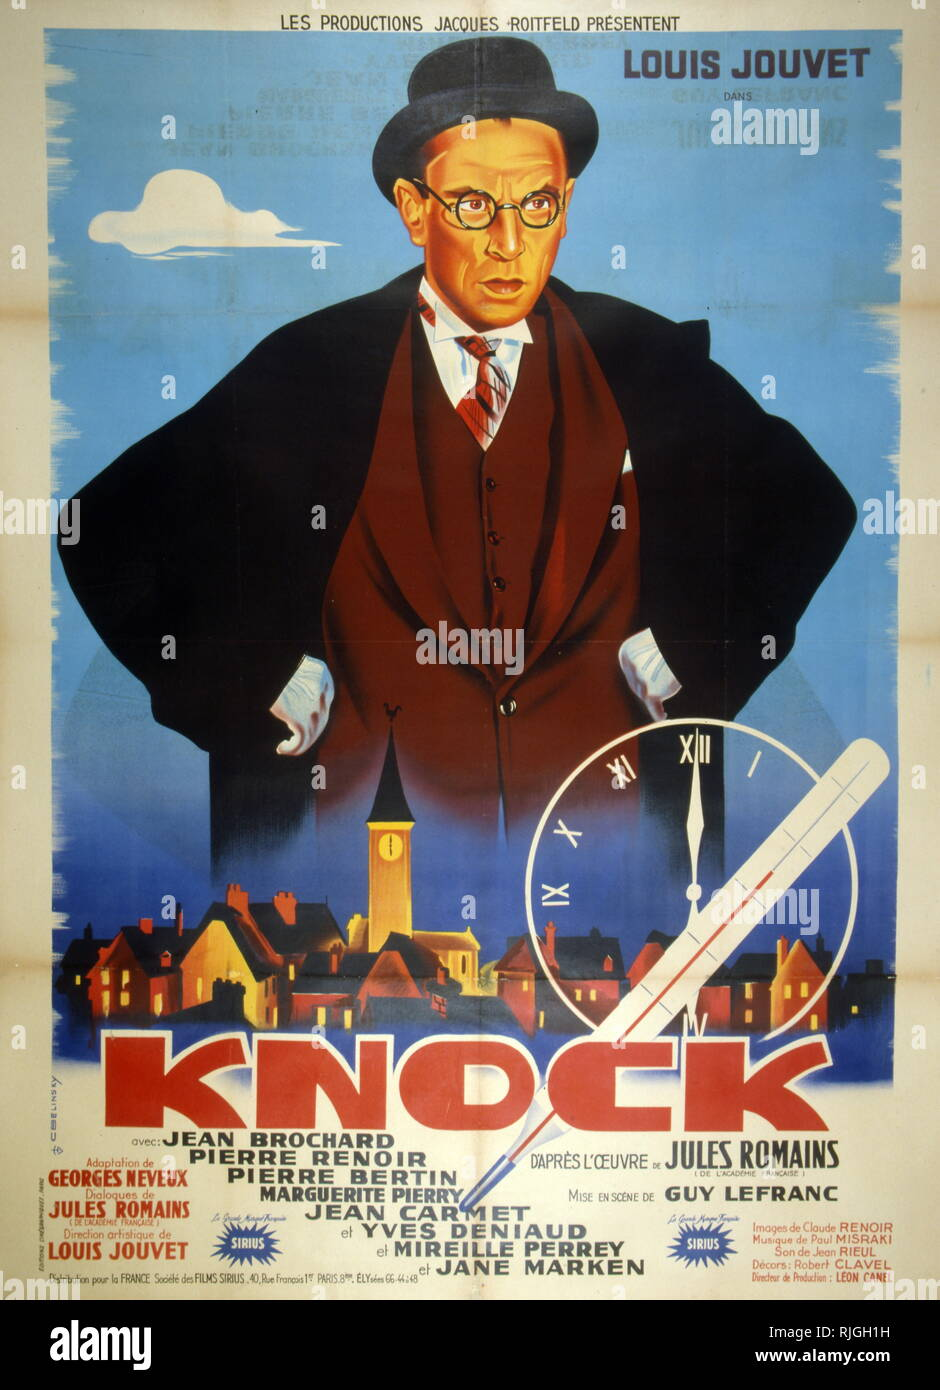 French film poster for 'Dr. Knock' (original title Knock) a French comedy film, from 1951, directed by Guy Lefranc, written by Georges Neveux, and starring by Louis Jouvet. It also features an unaccredited appearance by Louis de Funes. The movie is based on the 1923 theatre play Knock ou le Triomphe de la medicine (Knock or The Triumph of Medicine) by Jules Romains. - Stock Image